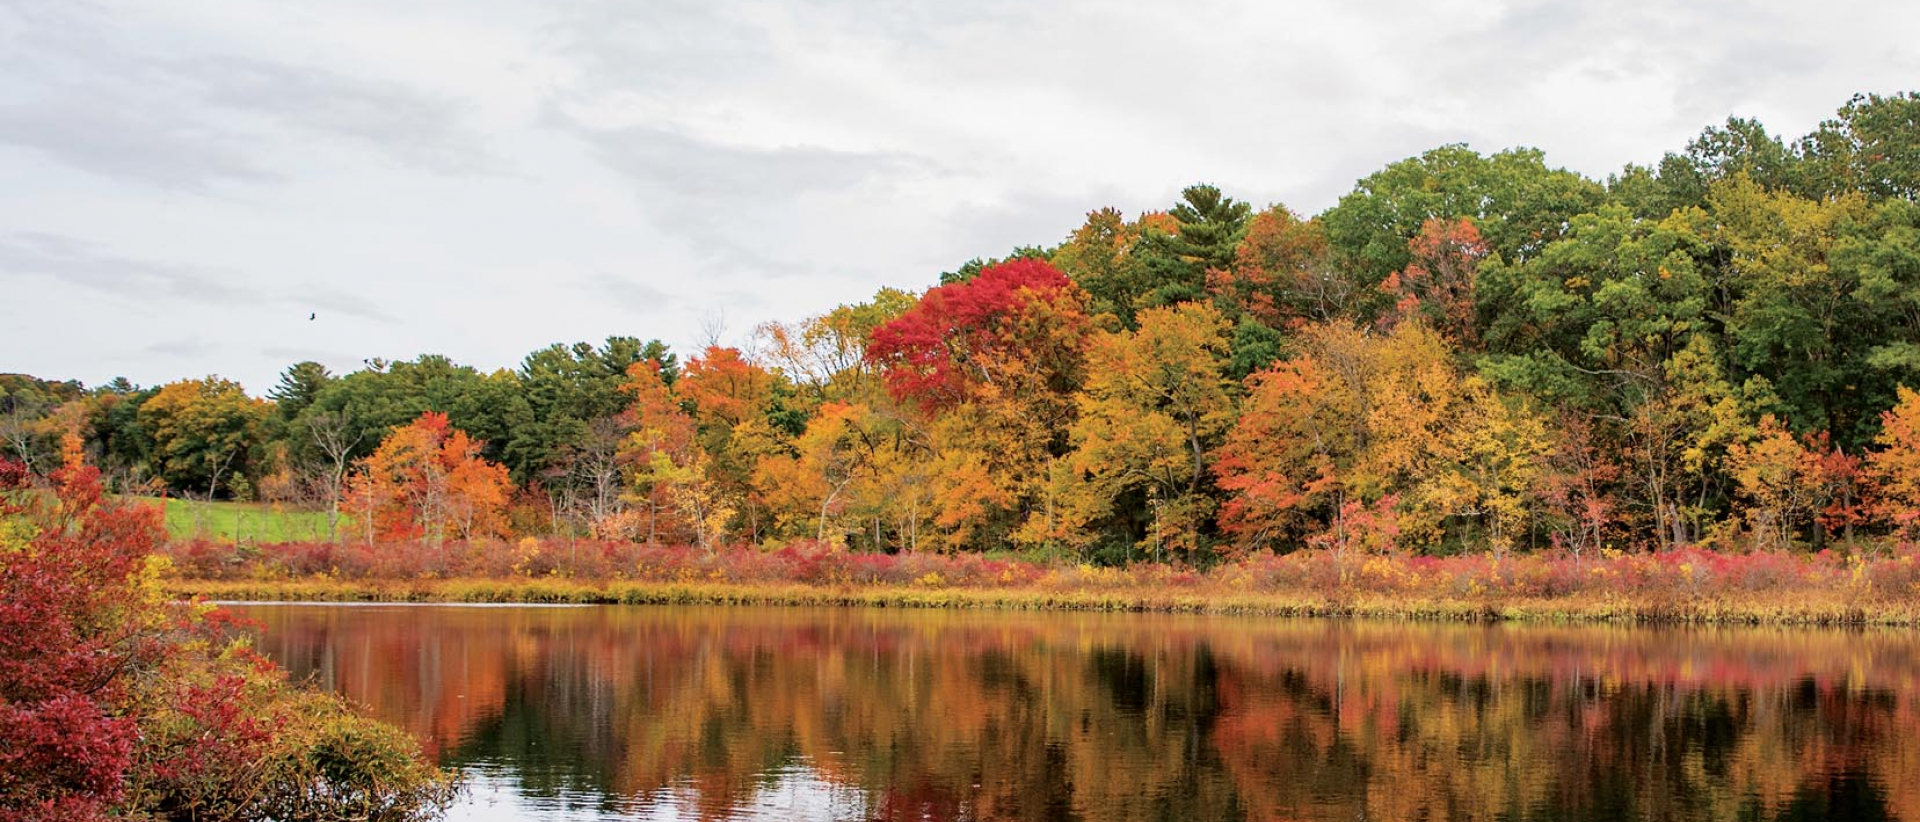 Lake in fall with brightly colored folliage